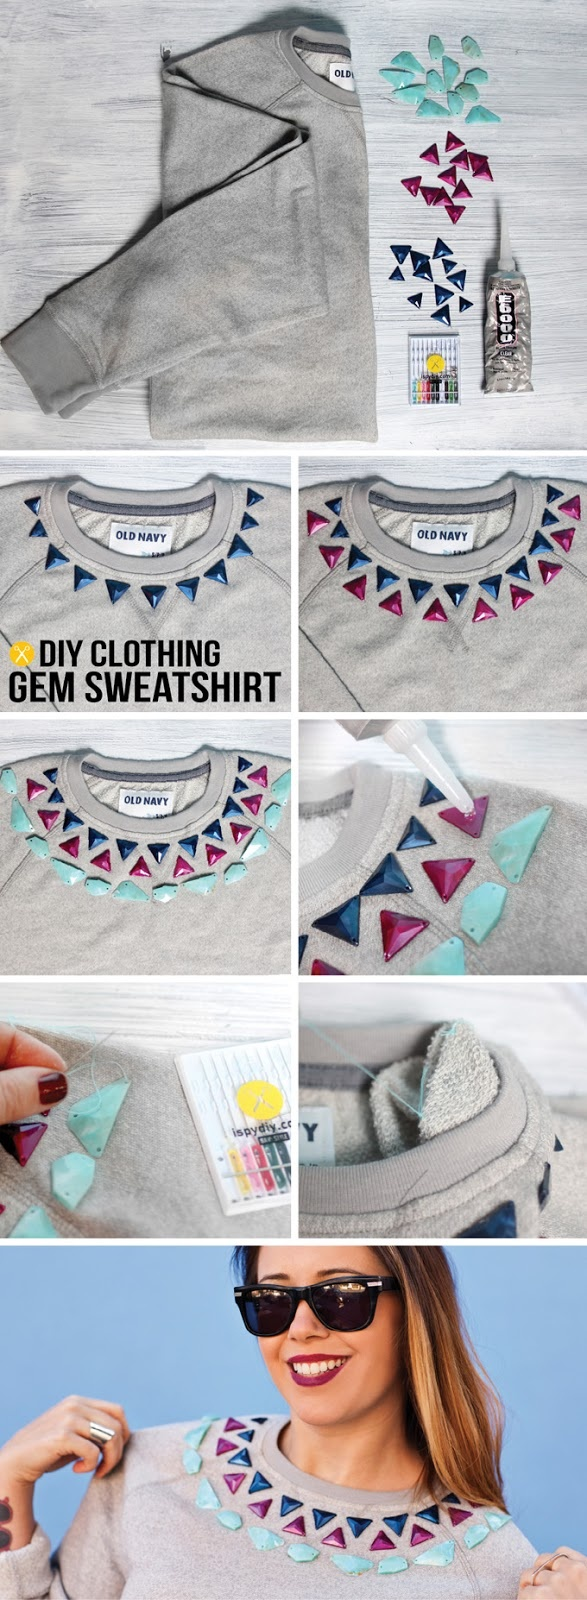 19 DIY Fashion Projects